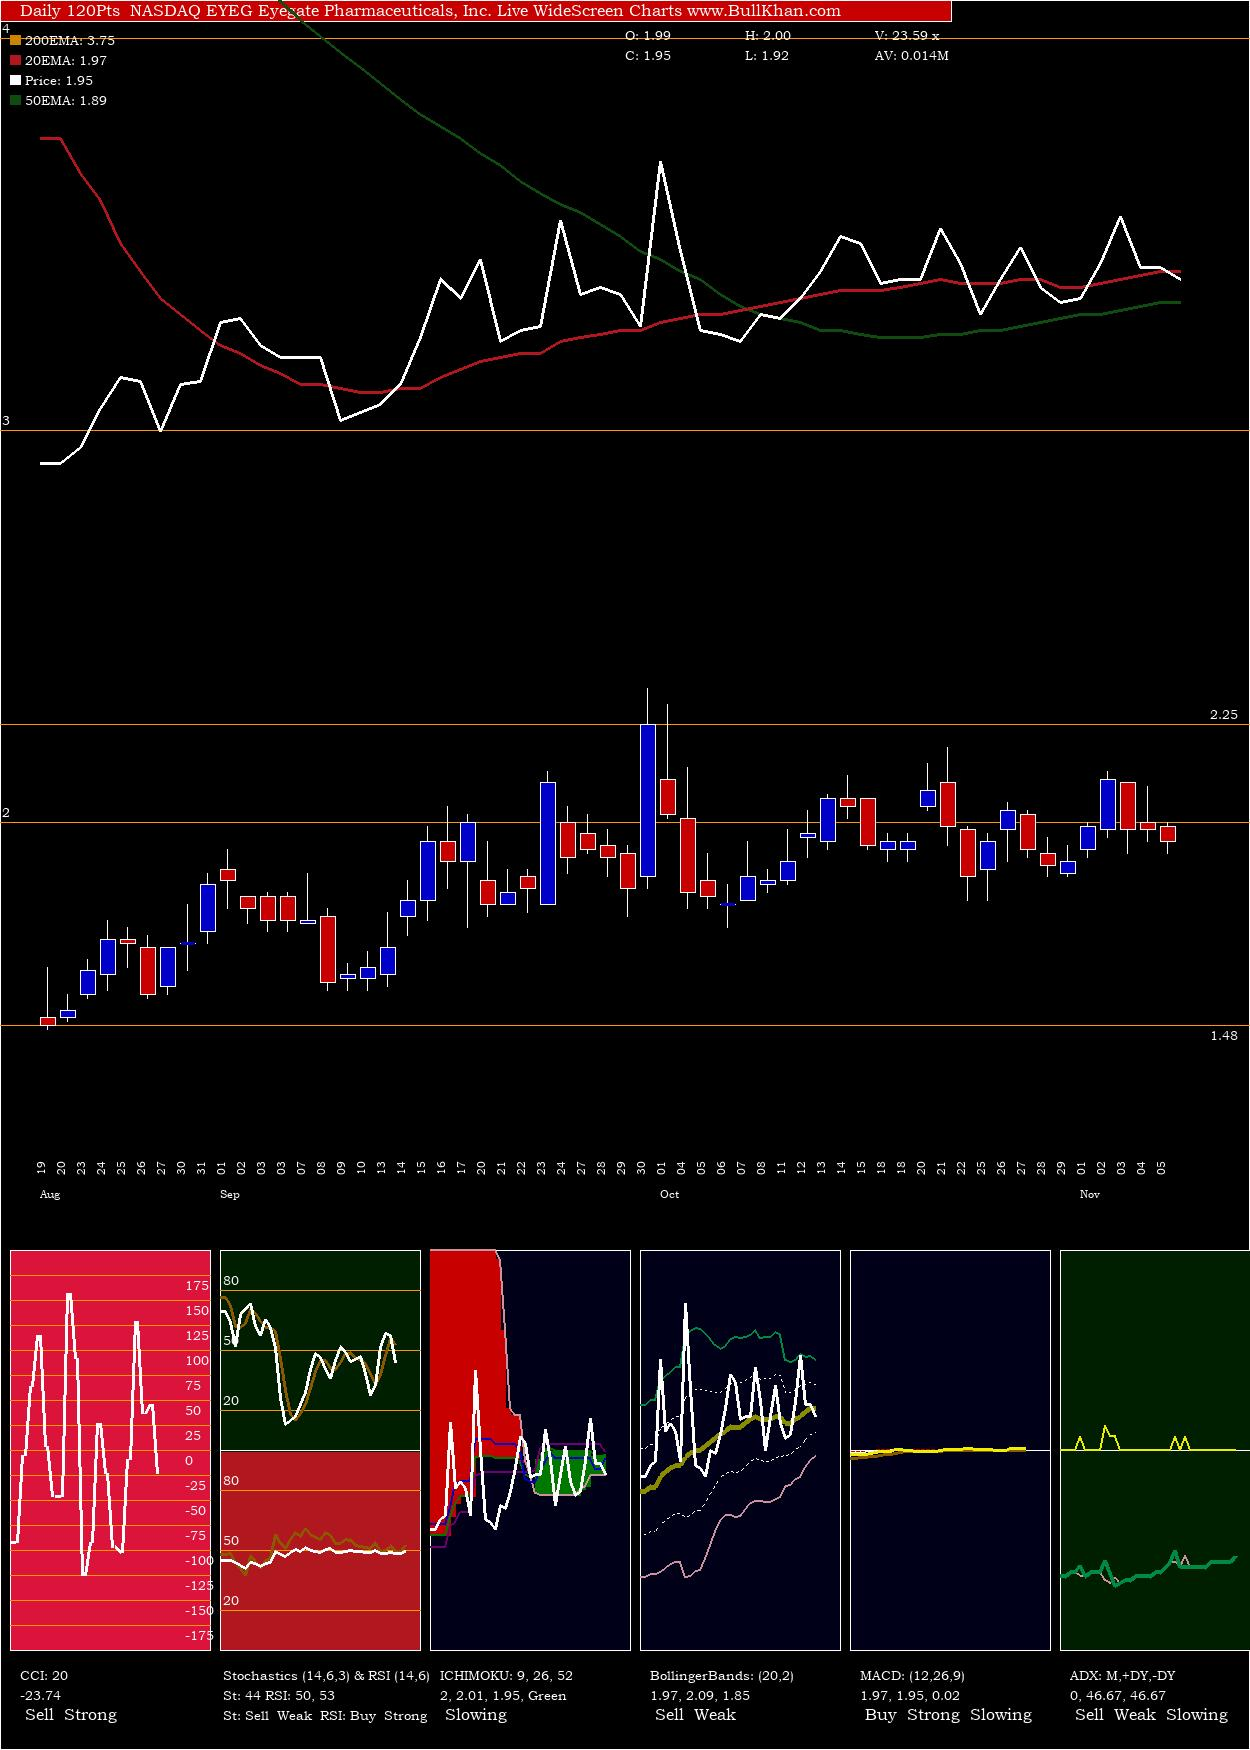 Eyegate Pharmaceuticals charts and indicators